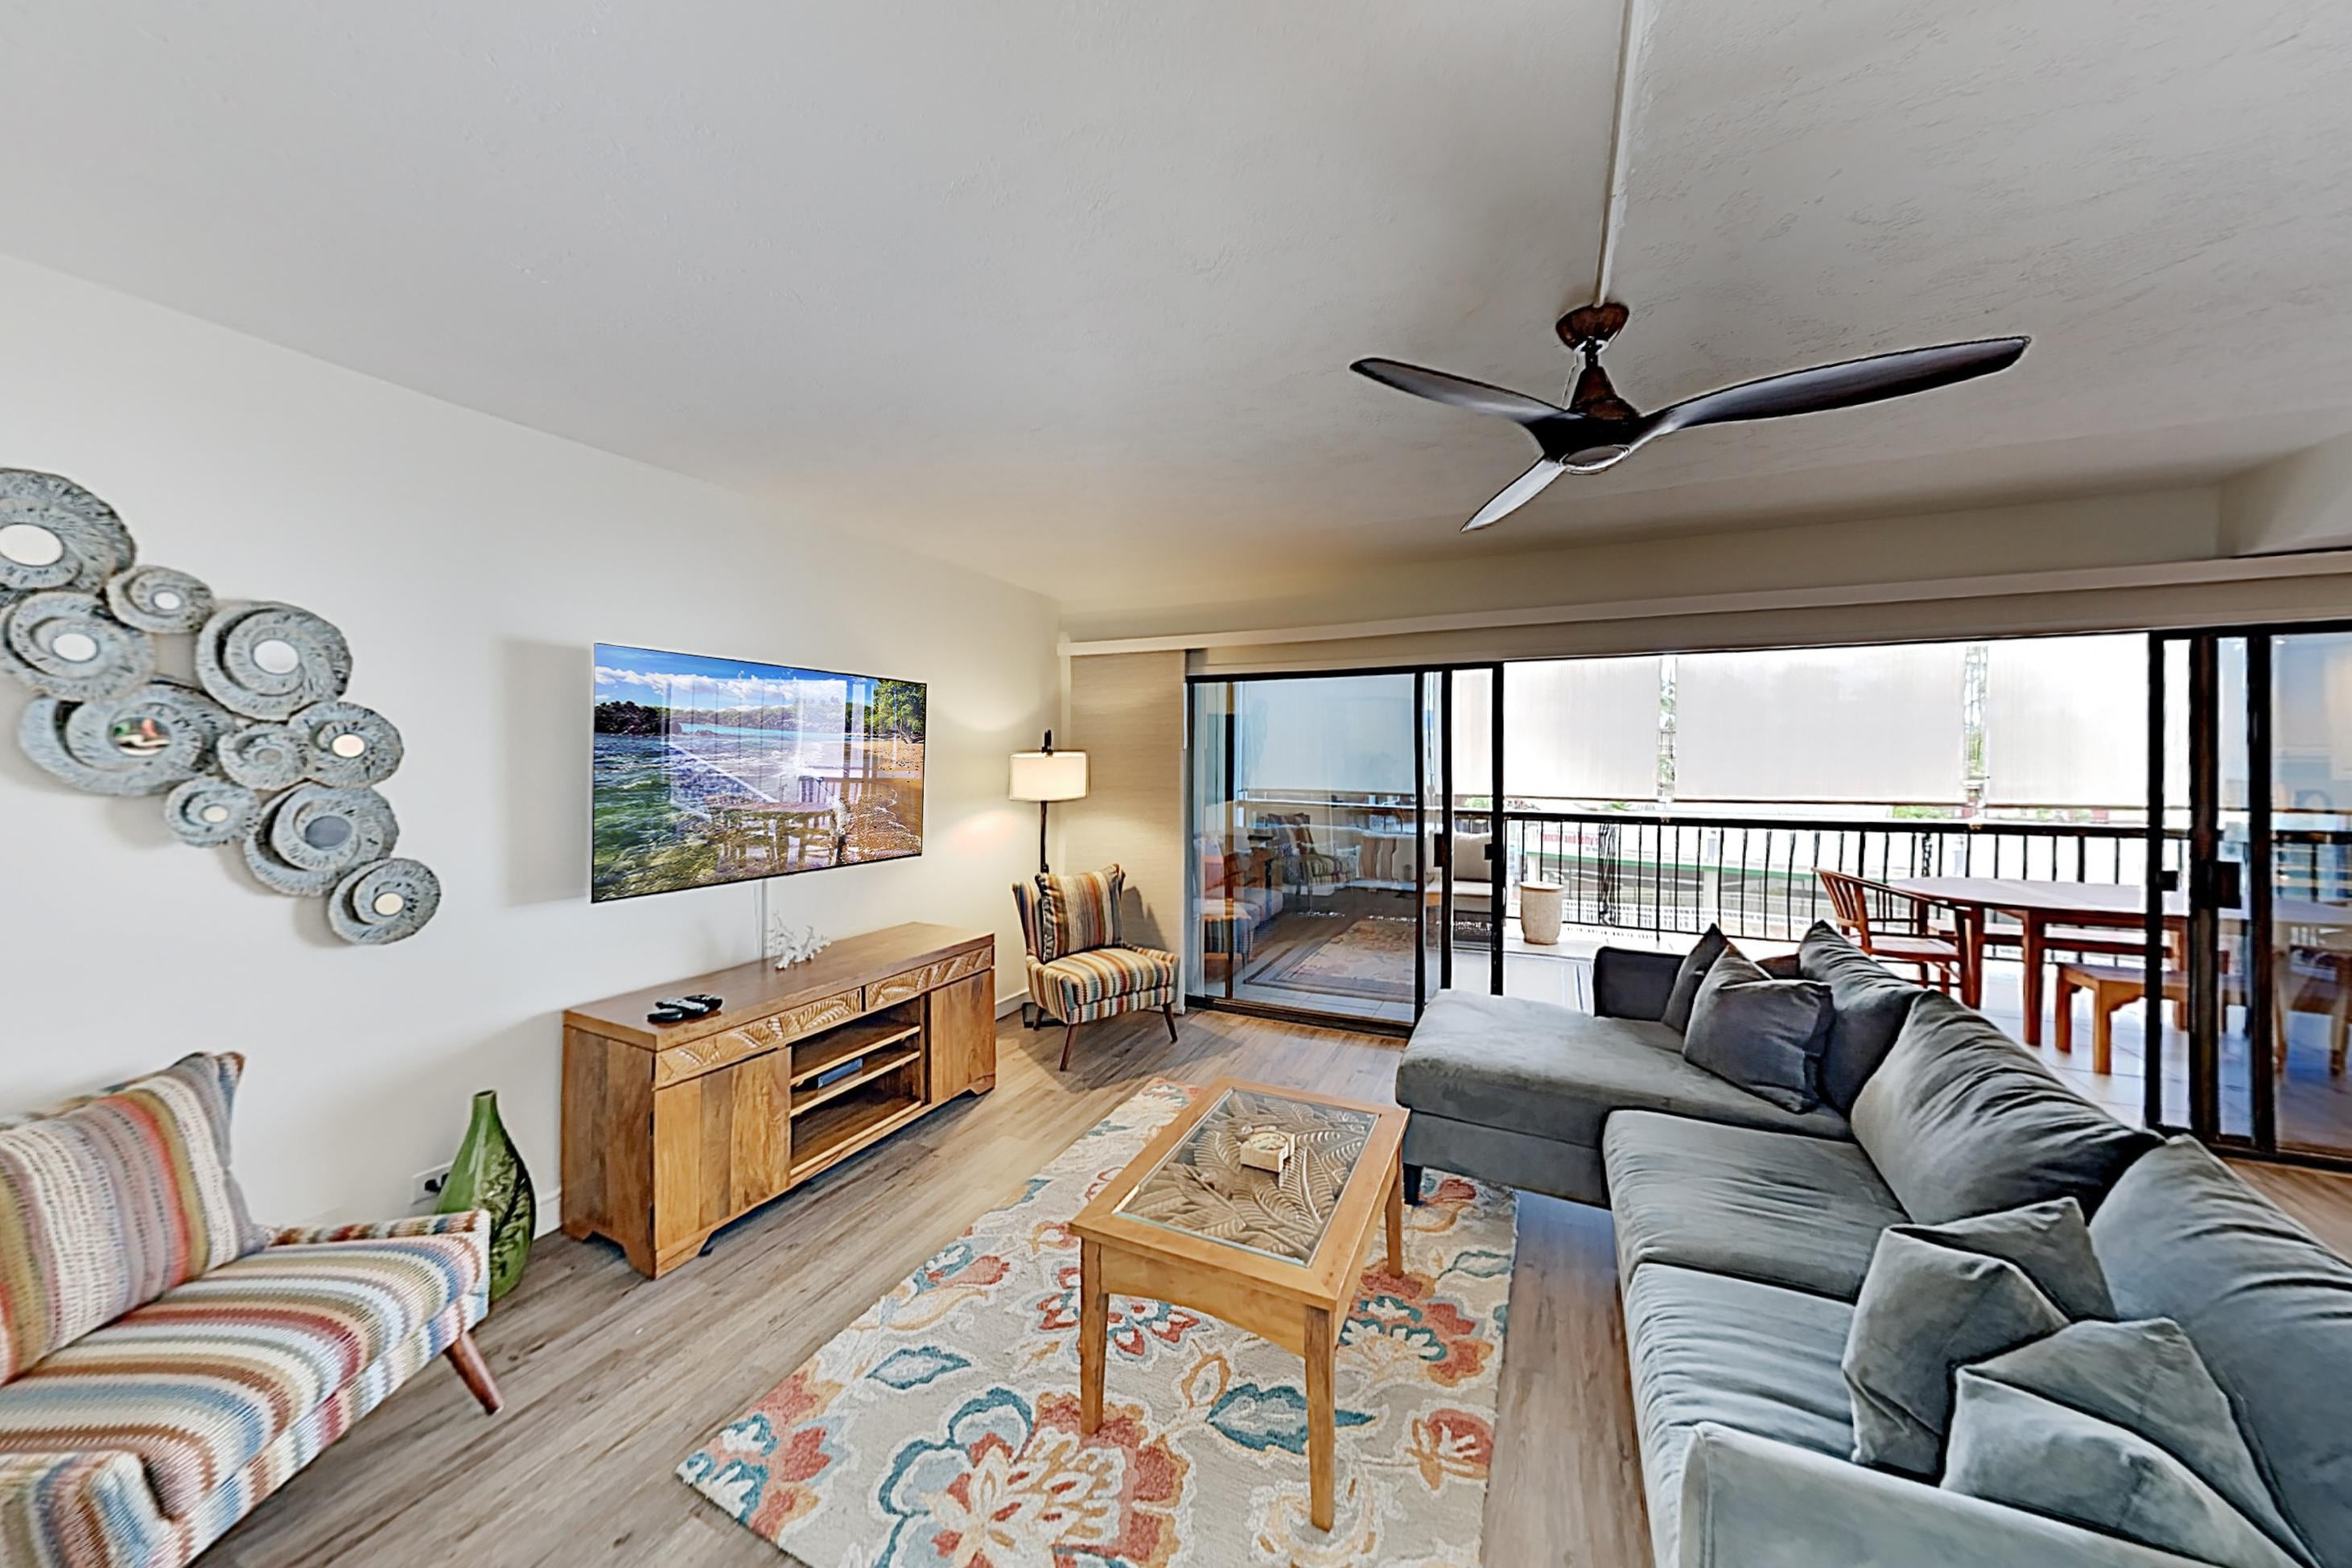 New Listing! Lovely Beach Condo w/ Pool